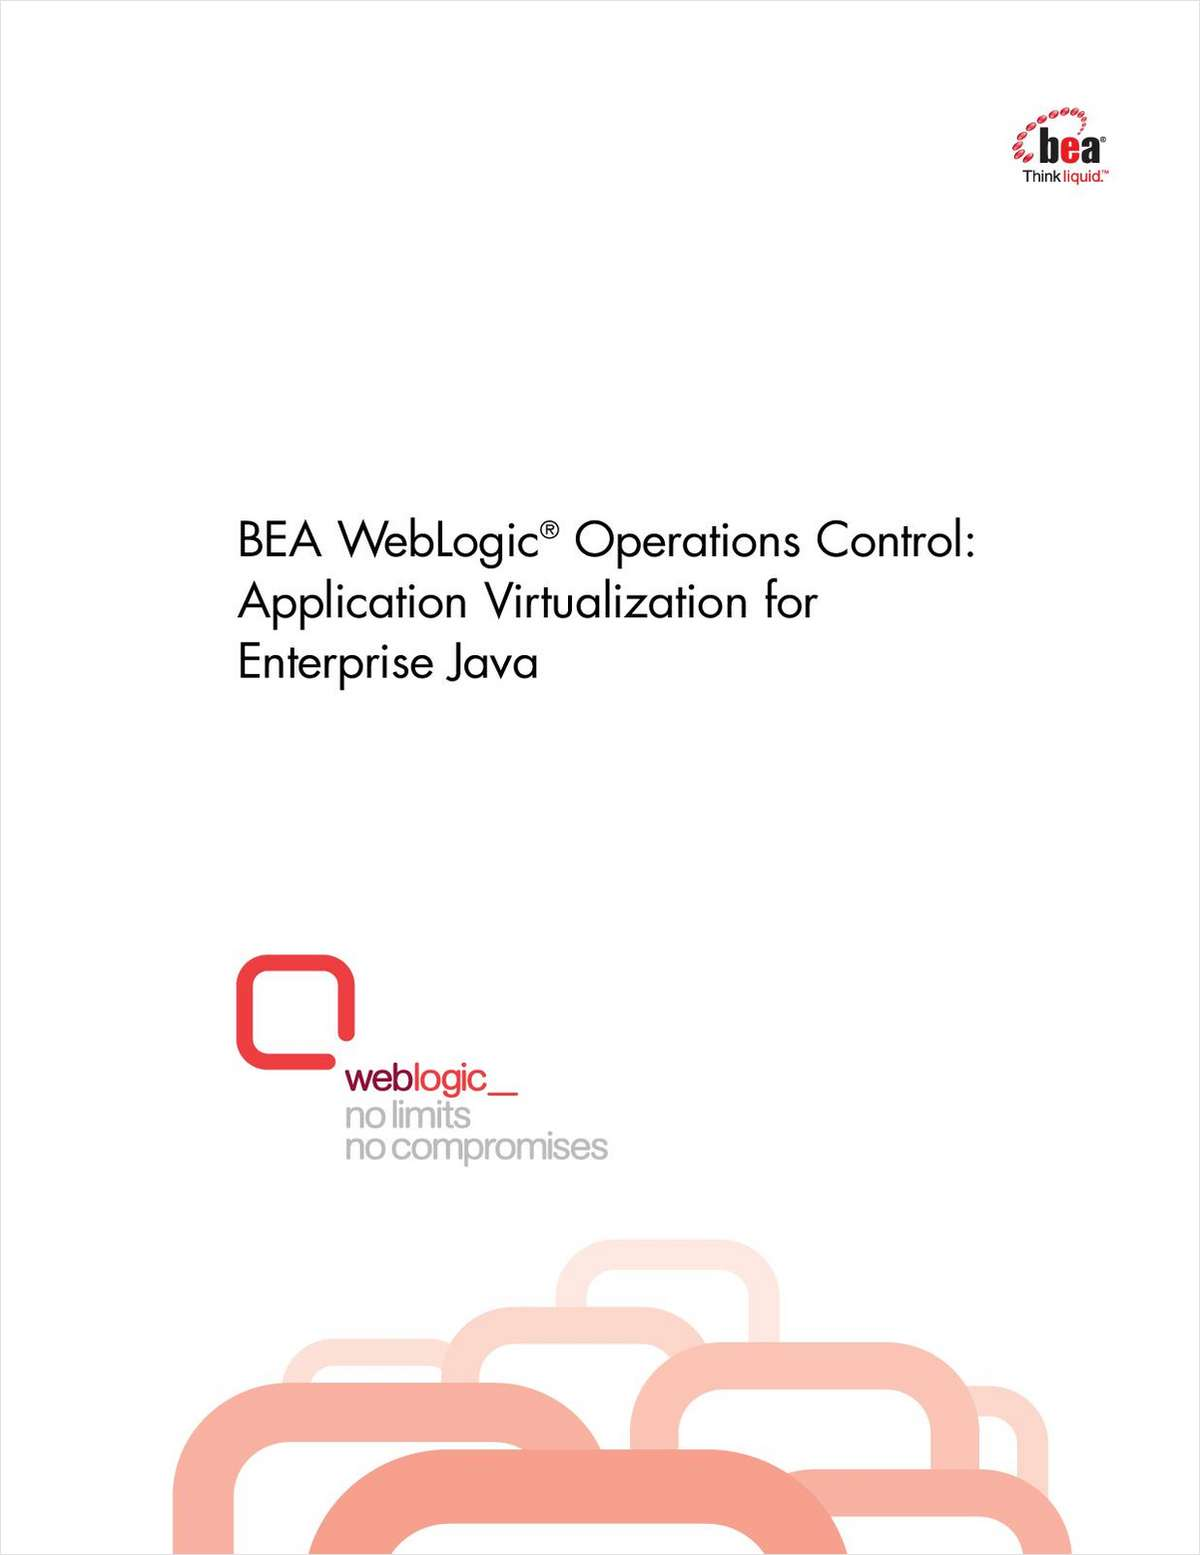 BEA WebLogic® Operations Control: Application Virtualization for Enterprise Java